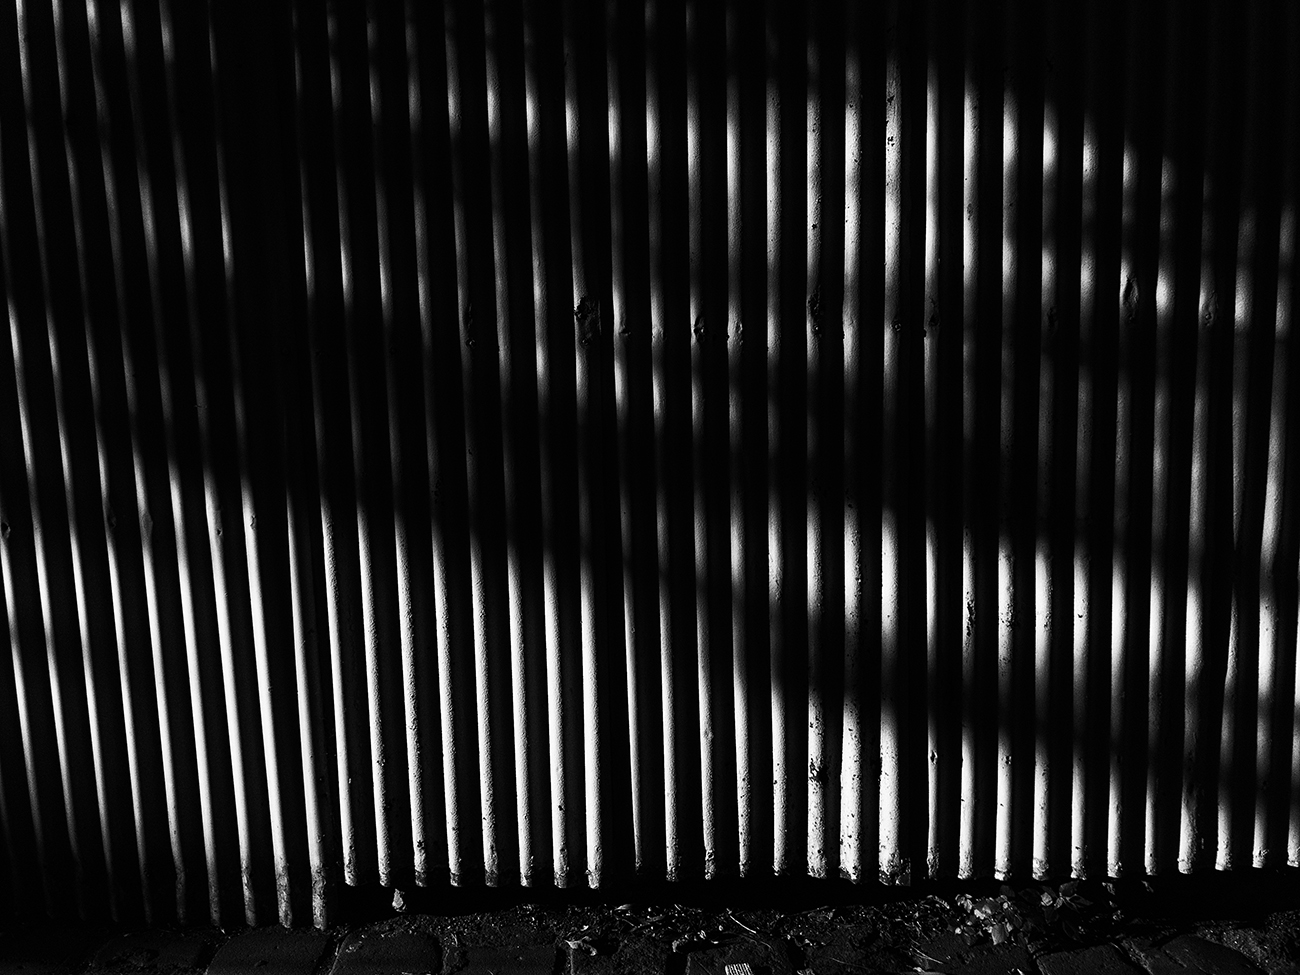 Corrugated iron fence, high contrast